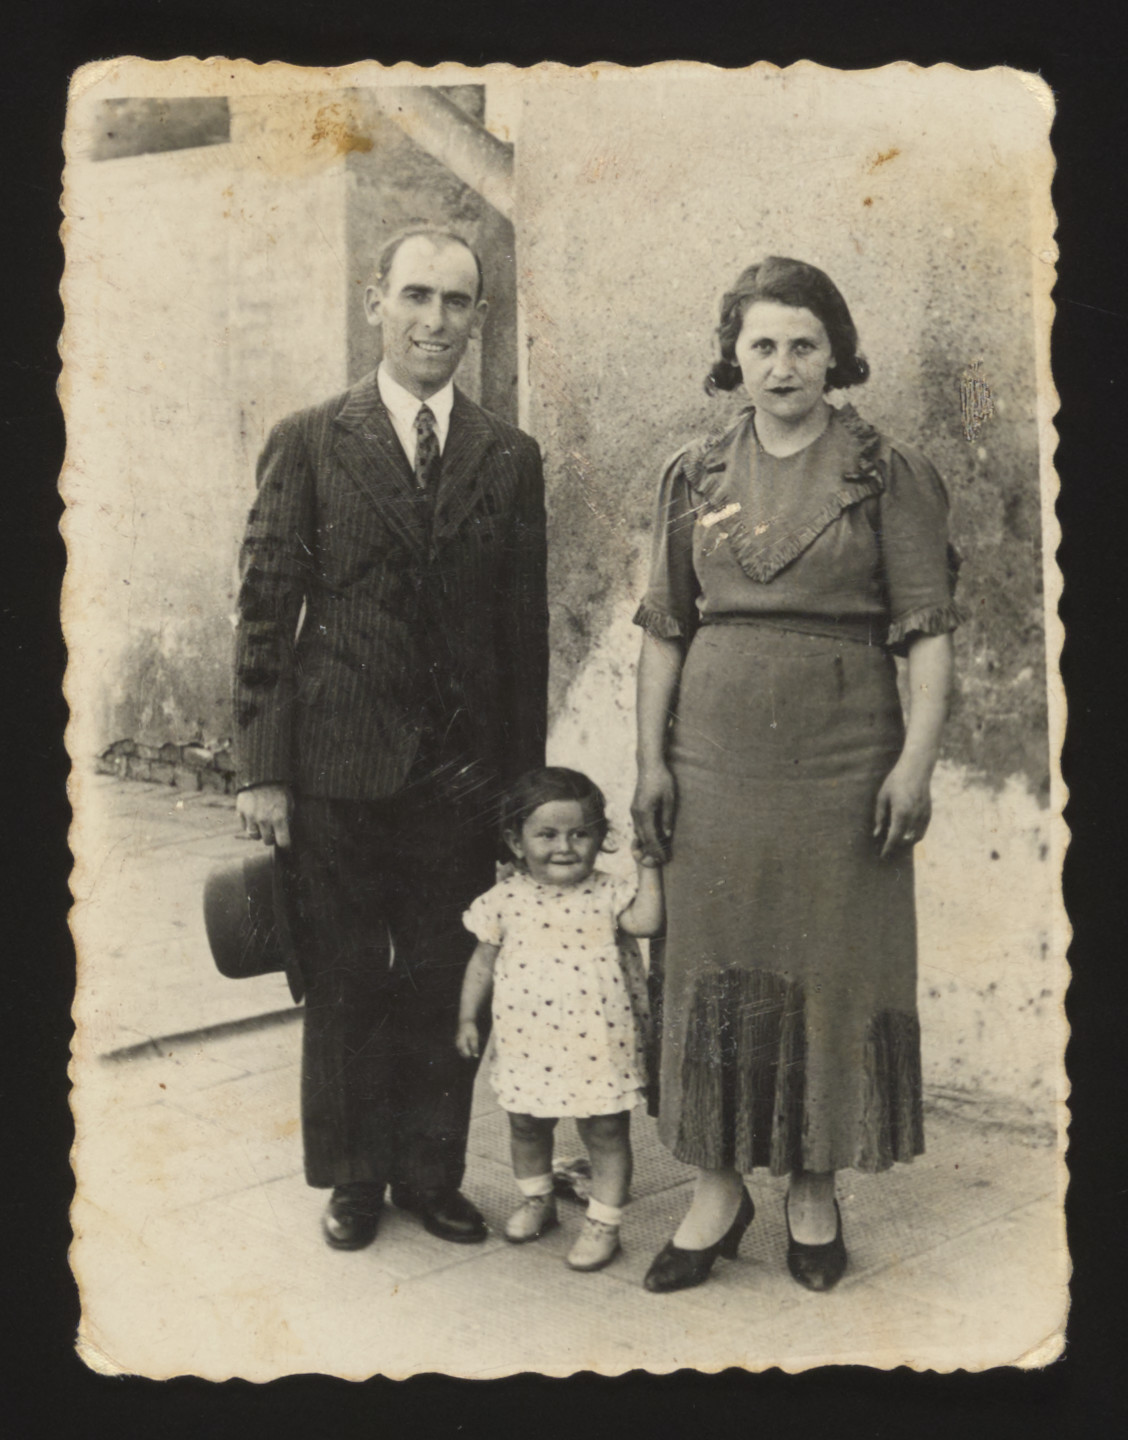 A Jewish family from Kozienice stands outside a building.  Pictured are Mordechai, Genia and Chaja Rubinsztajn.  The entire family perished in Treblinka.